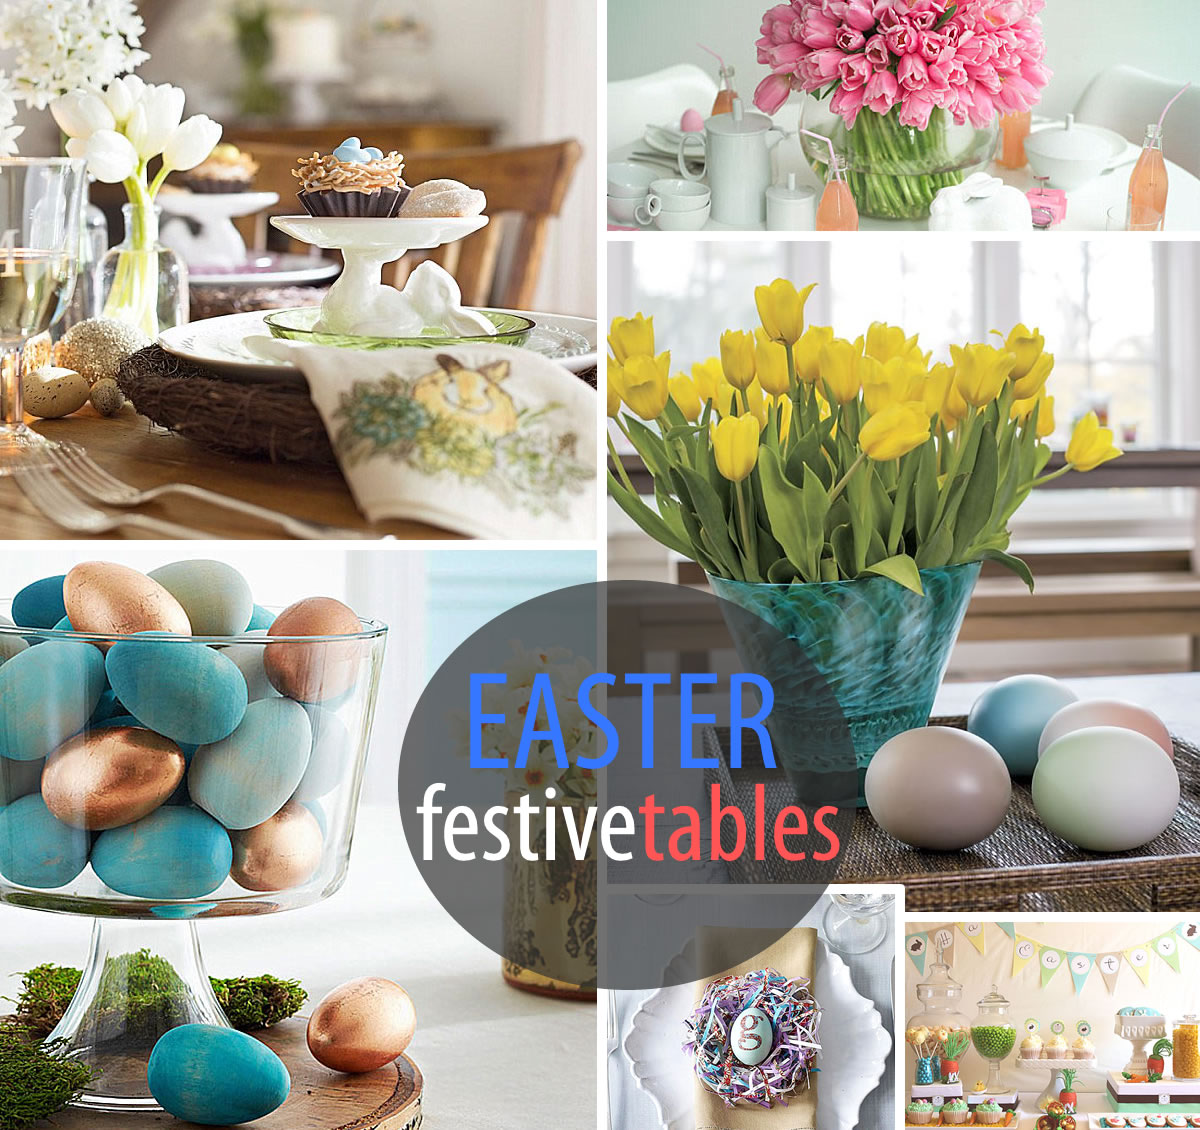 & 10 Festive Easter Table Settings